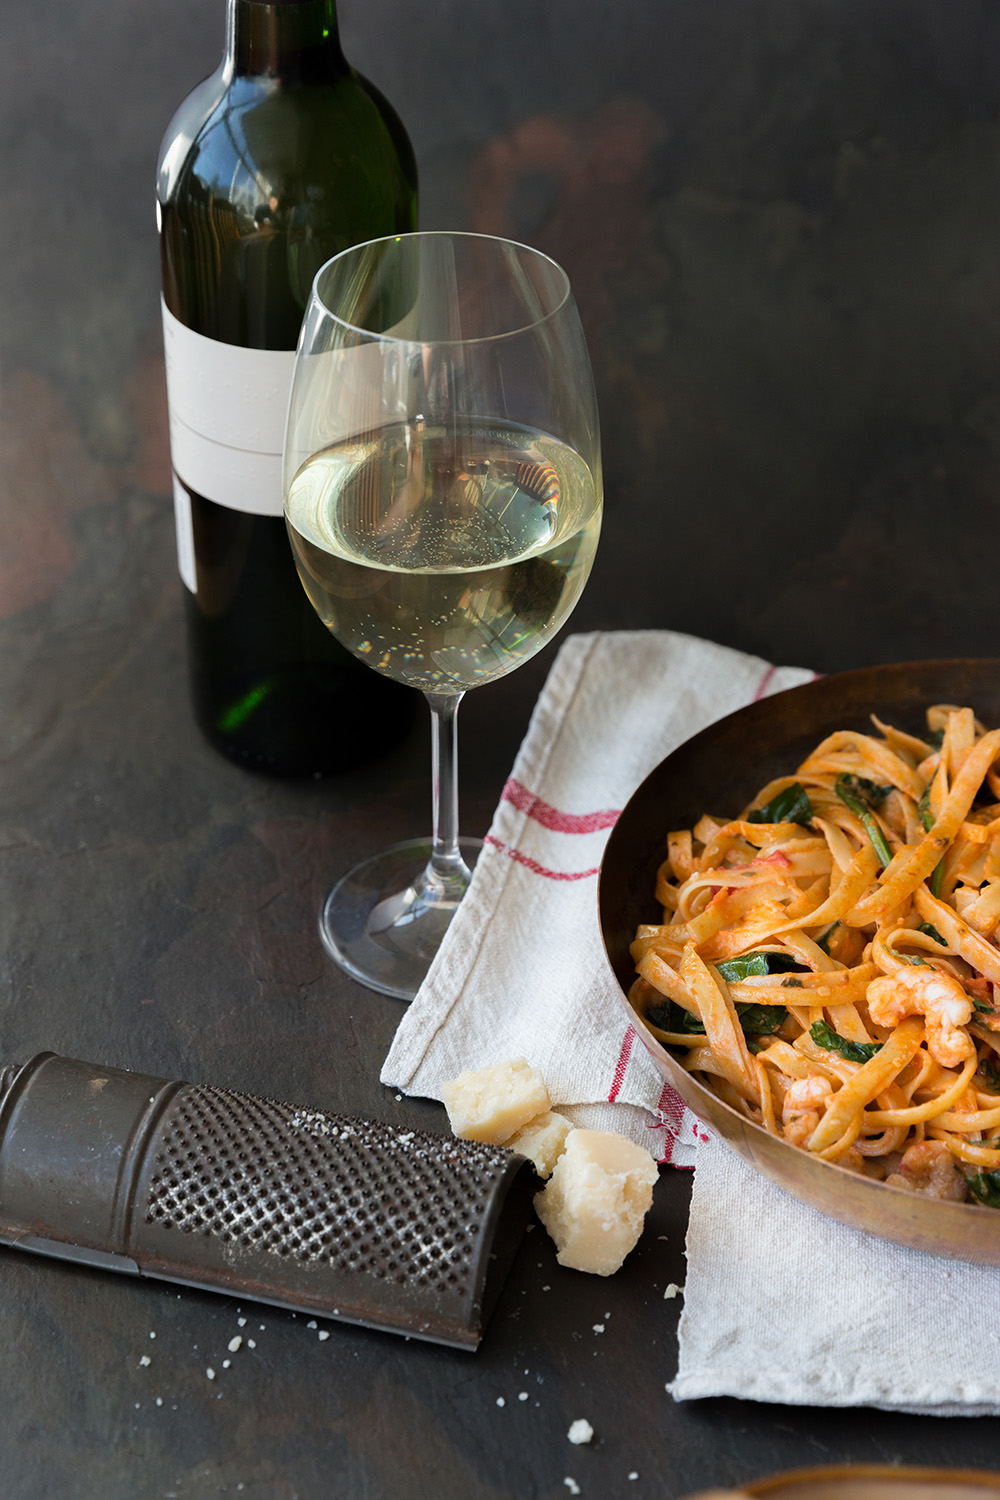 Prawn pasta to celebrate Sauvignon blanc